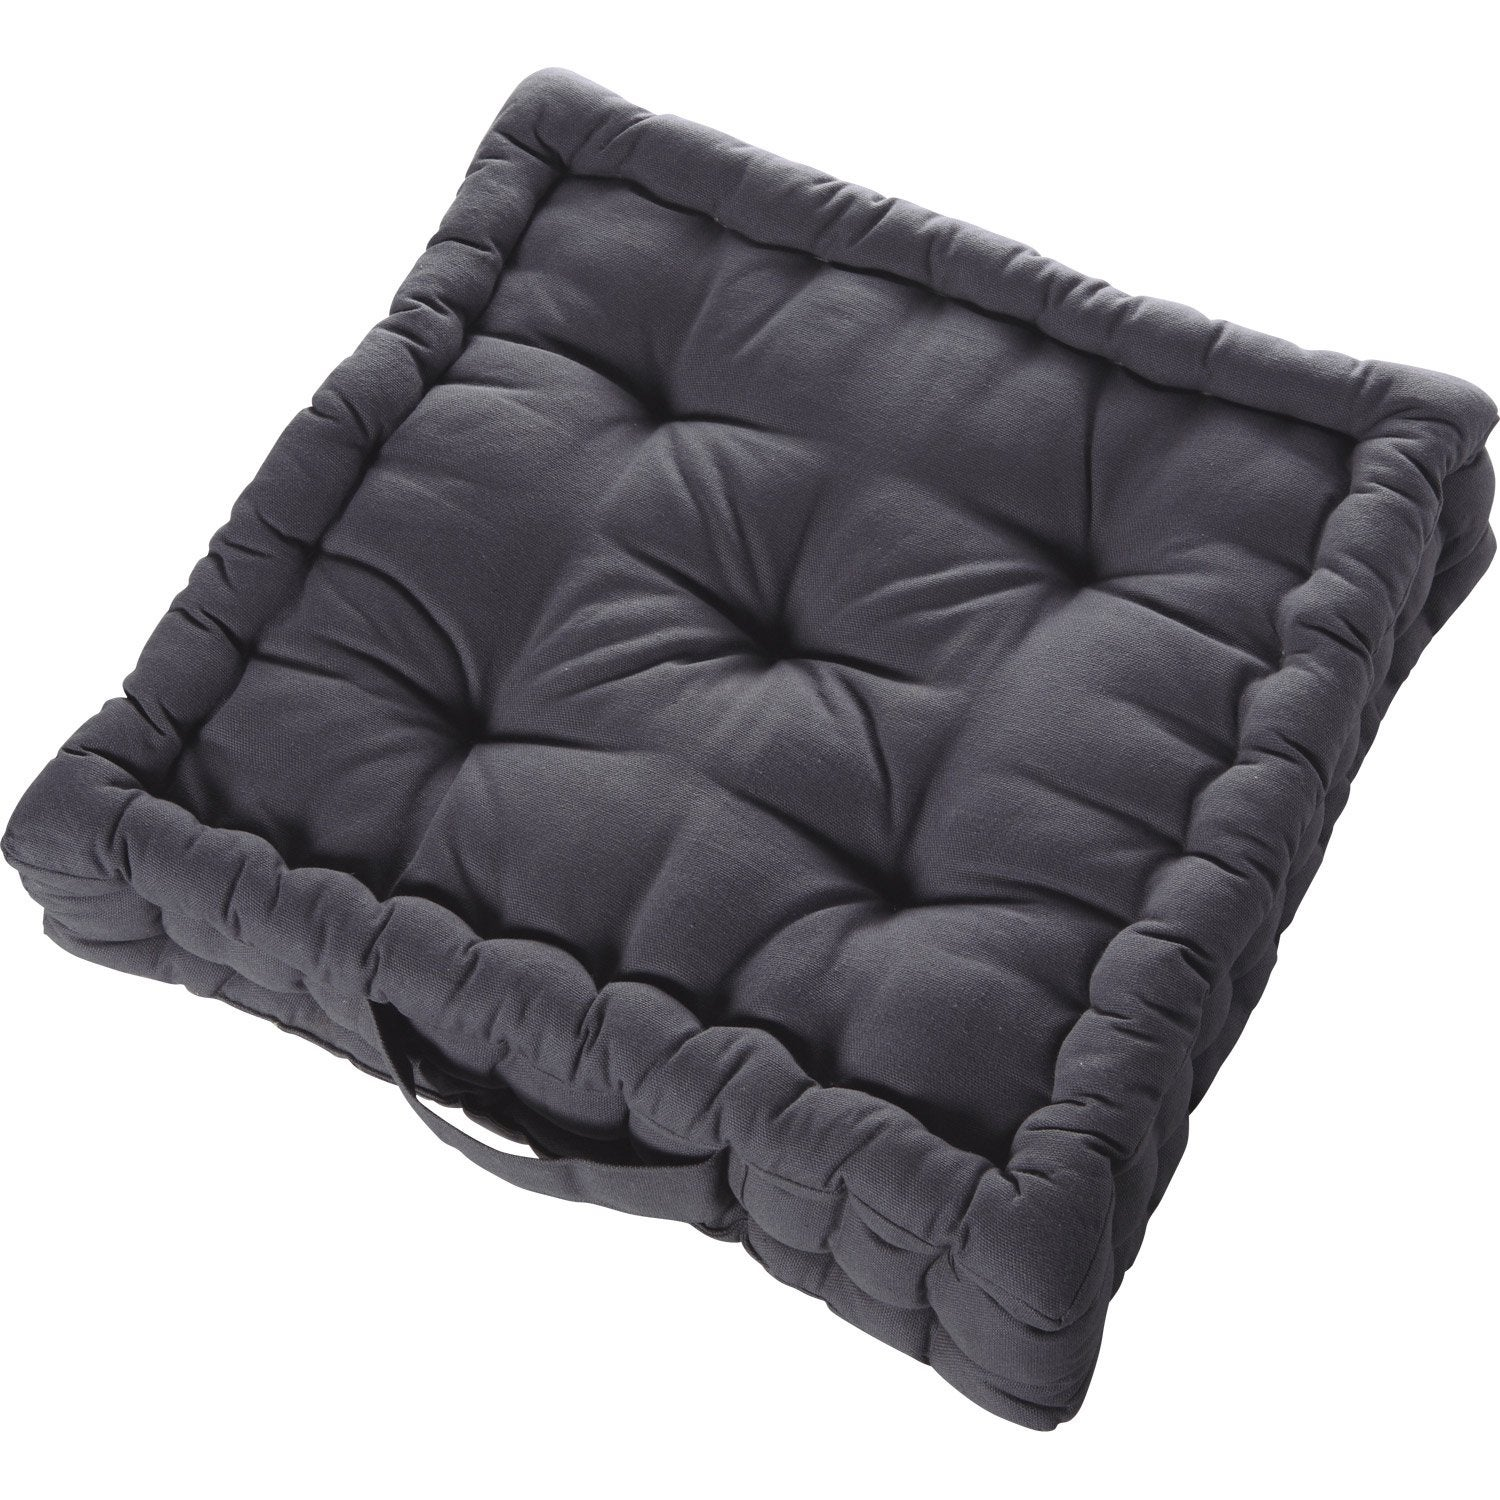 great coussin de sol cla inspire gris galet n l x with mousse pour matelas leroy merlin. Black Bedroom Furniture Sets. Home Design Ideas